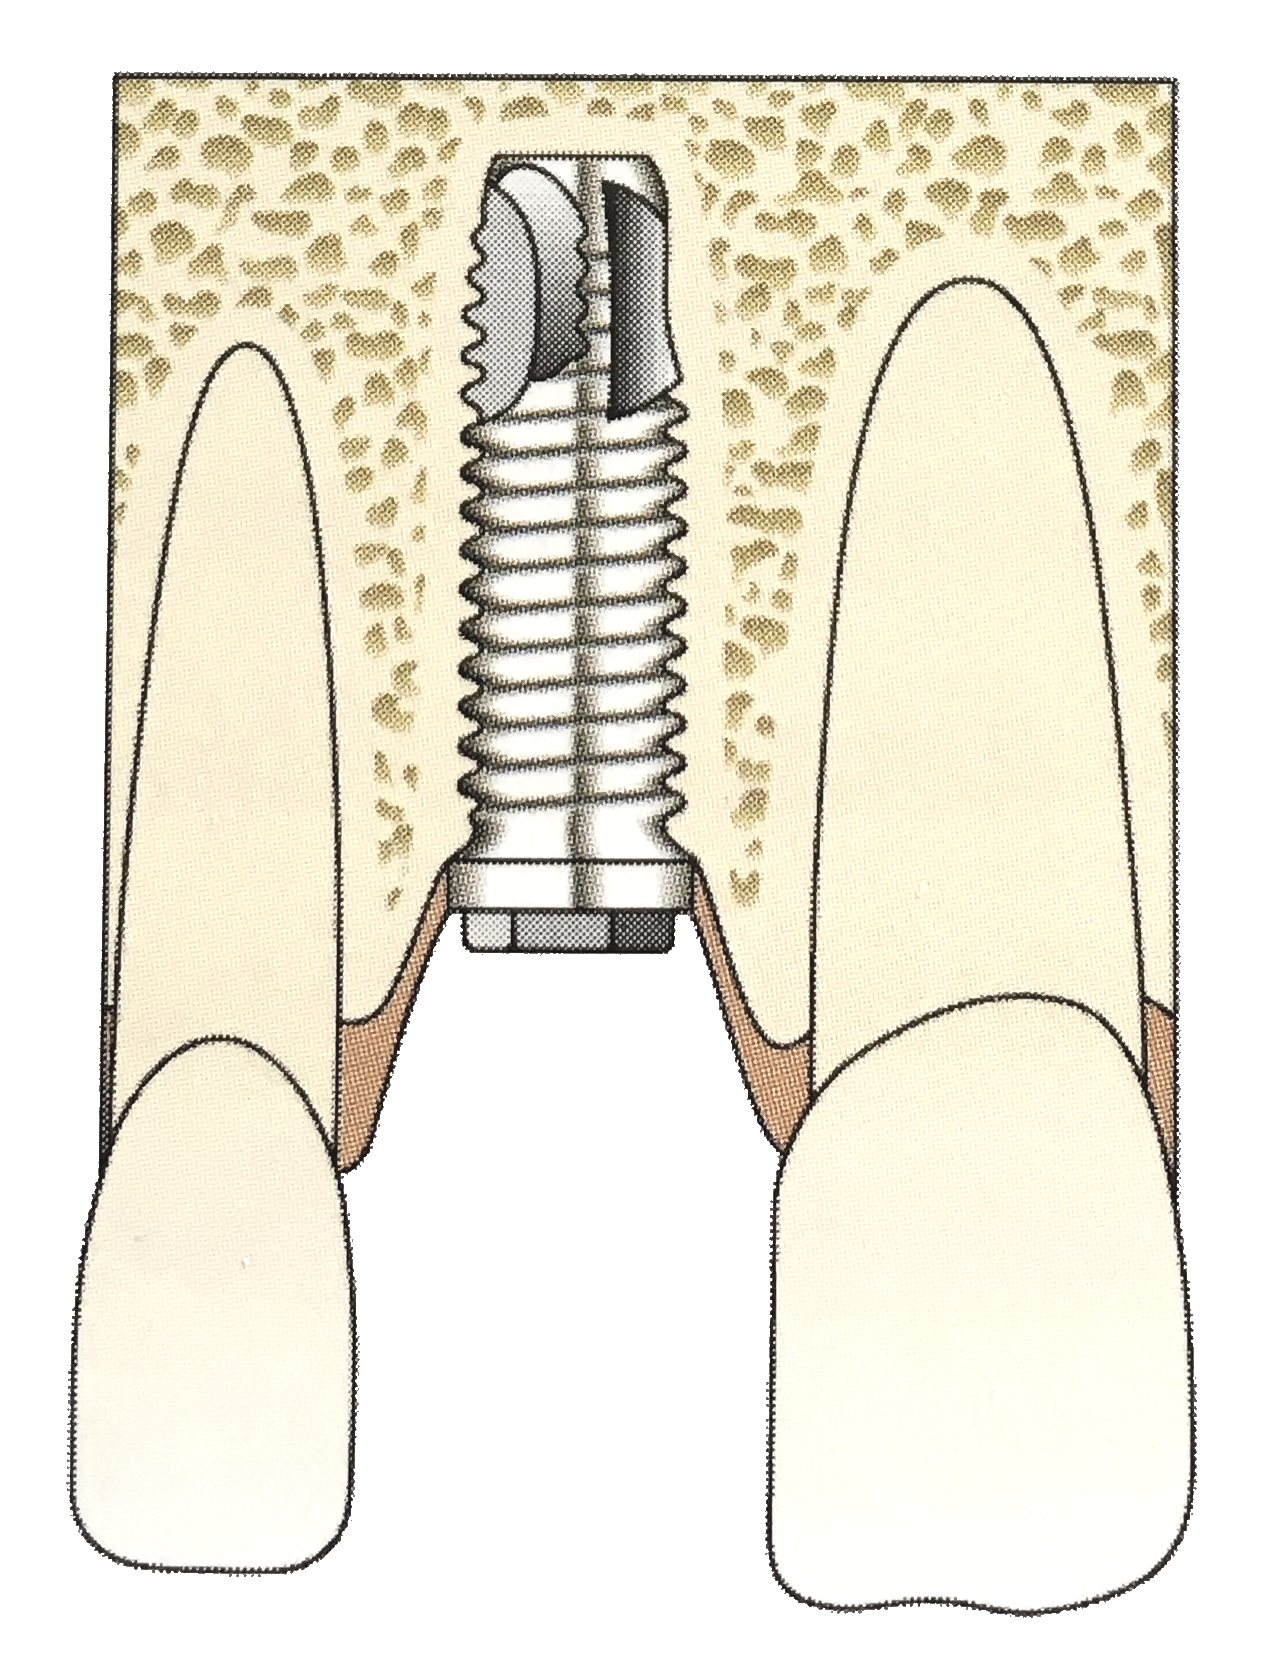 Implant in place